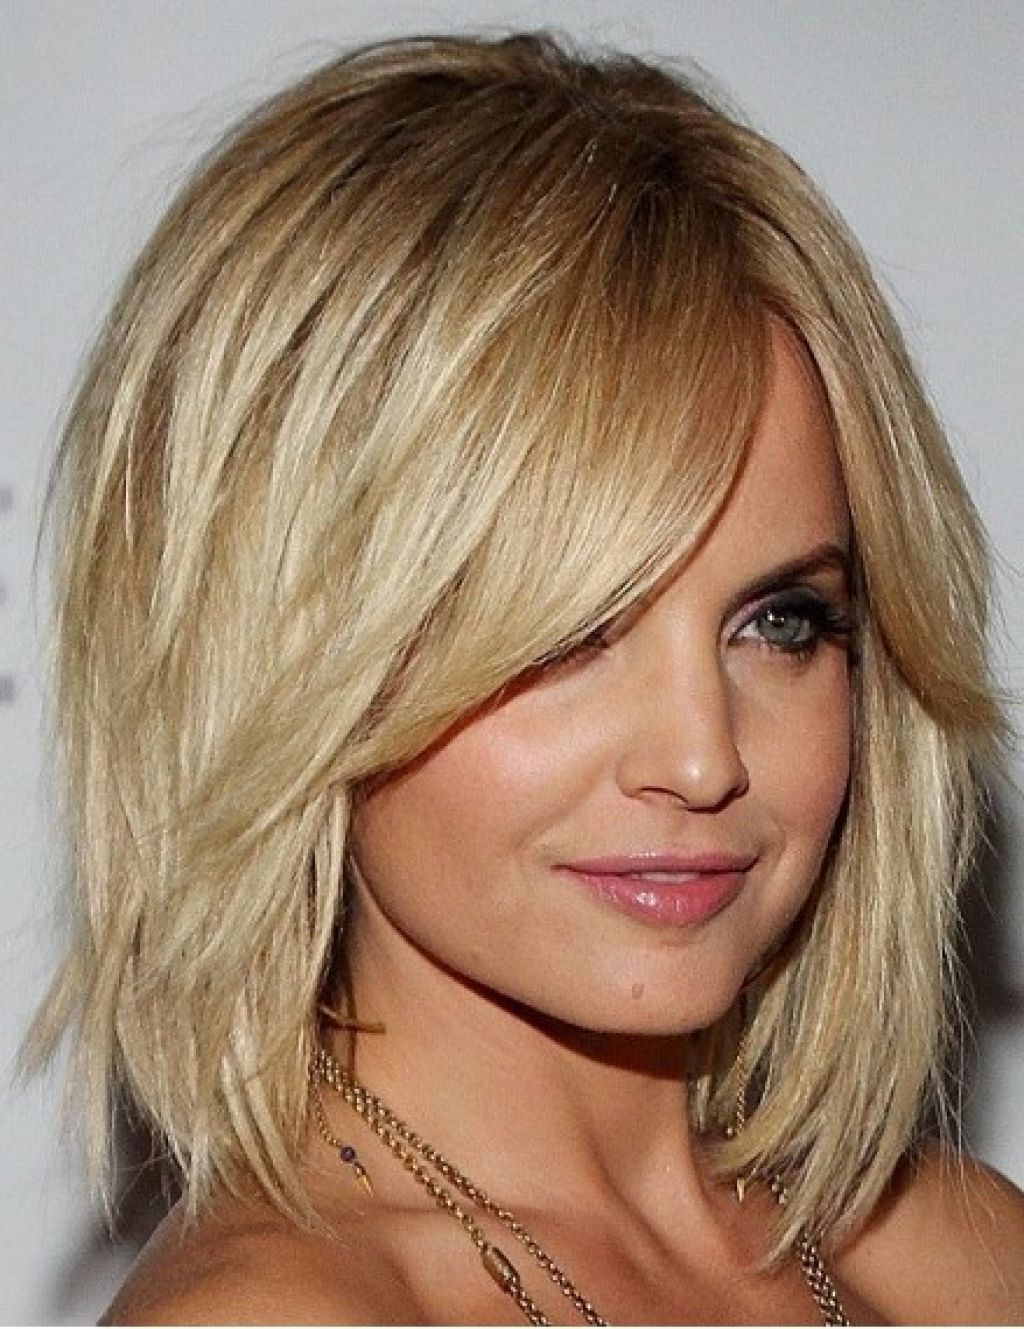 Short Haircuts For Long Faces Pictures – Hairstyle For Women & Man Regarding Well Known Medium Hairstyles For Women With Long Faces (View 16 of 20)